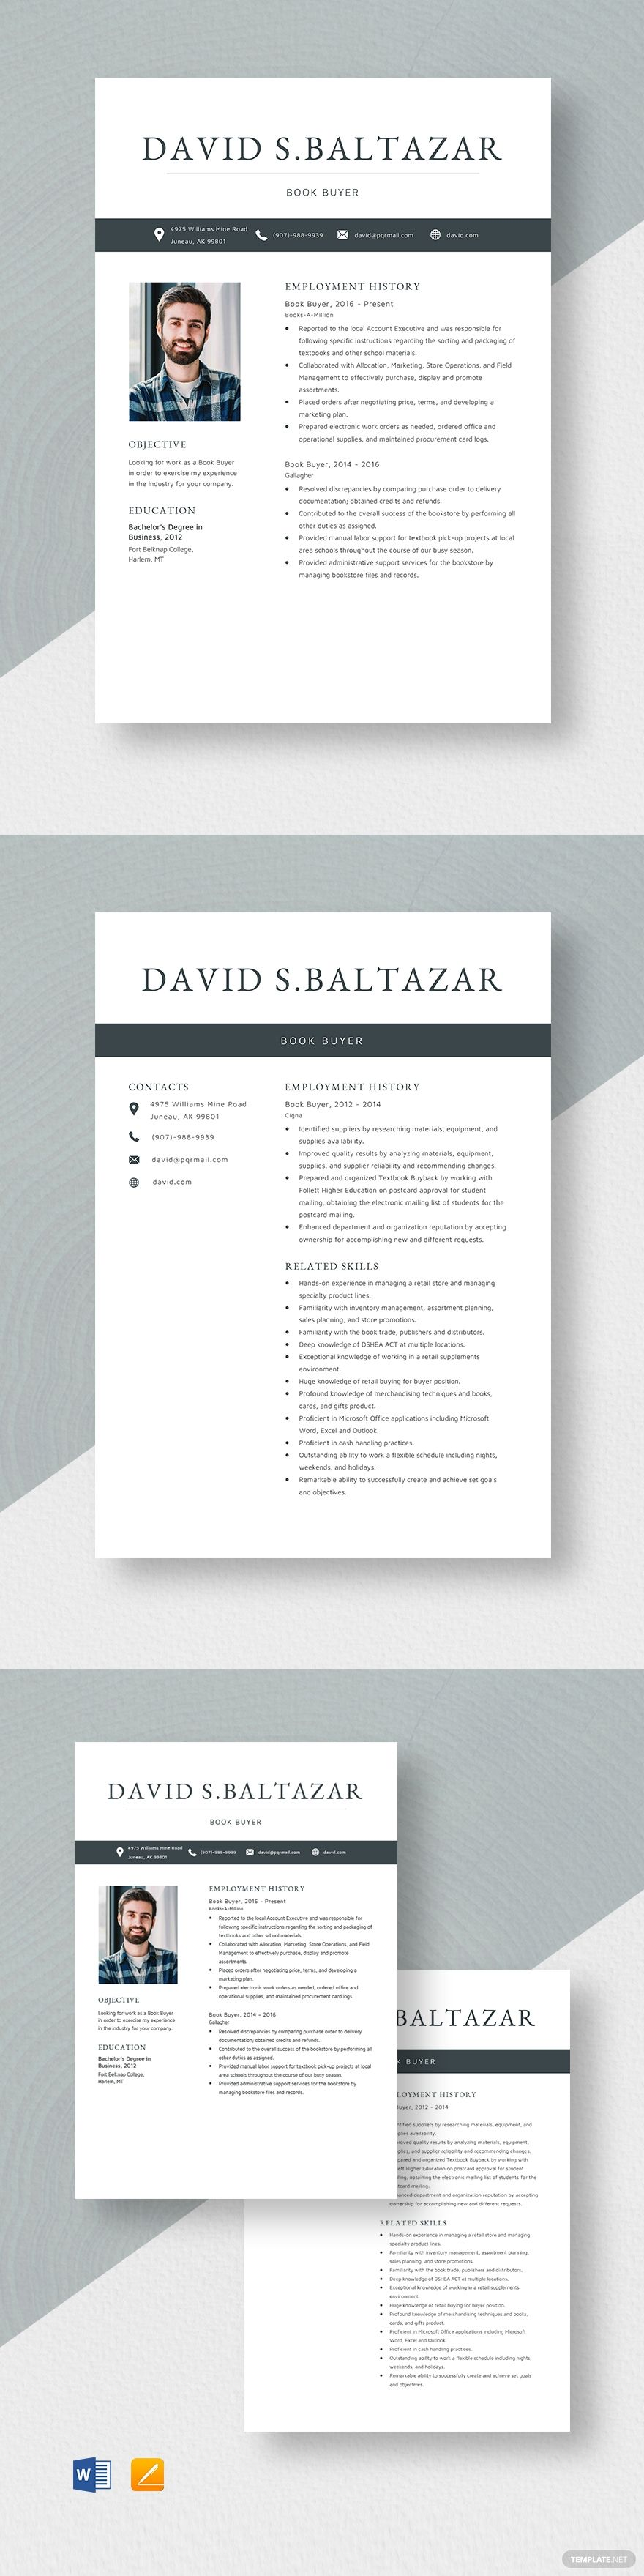 Book Buyer Resume Template in 2020 Project manager